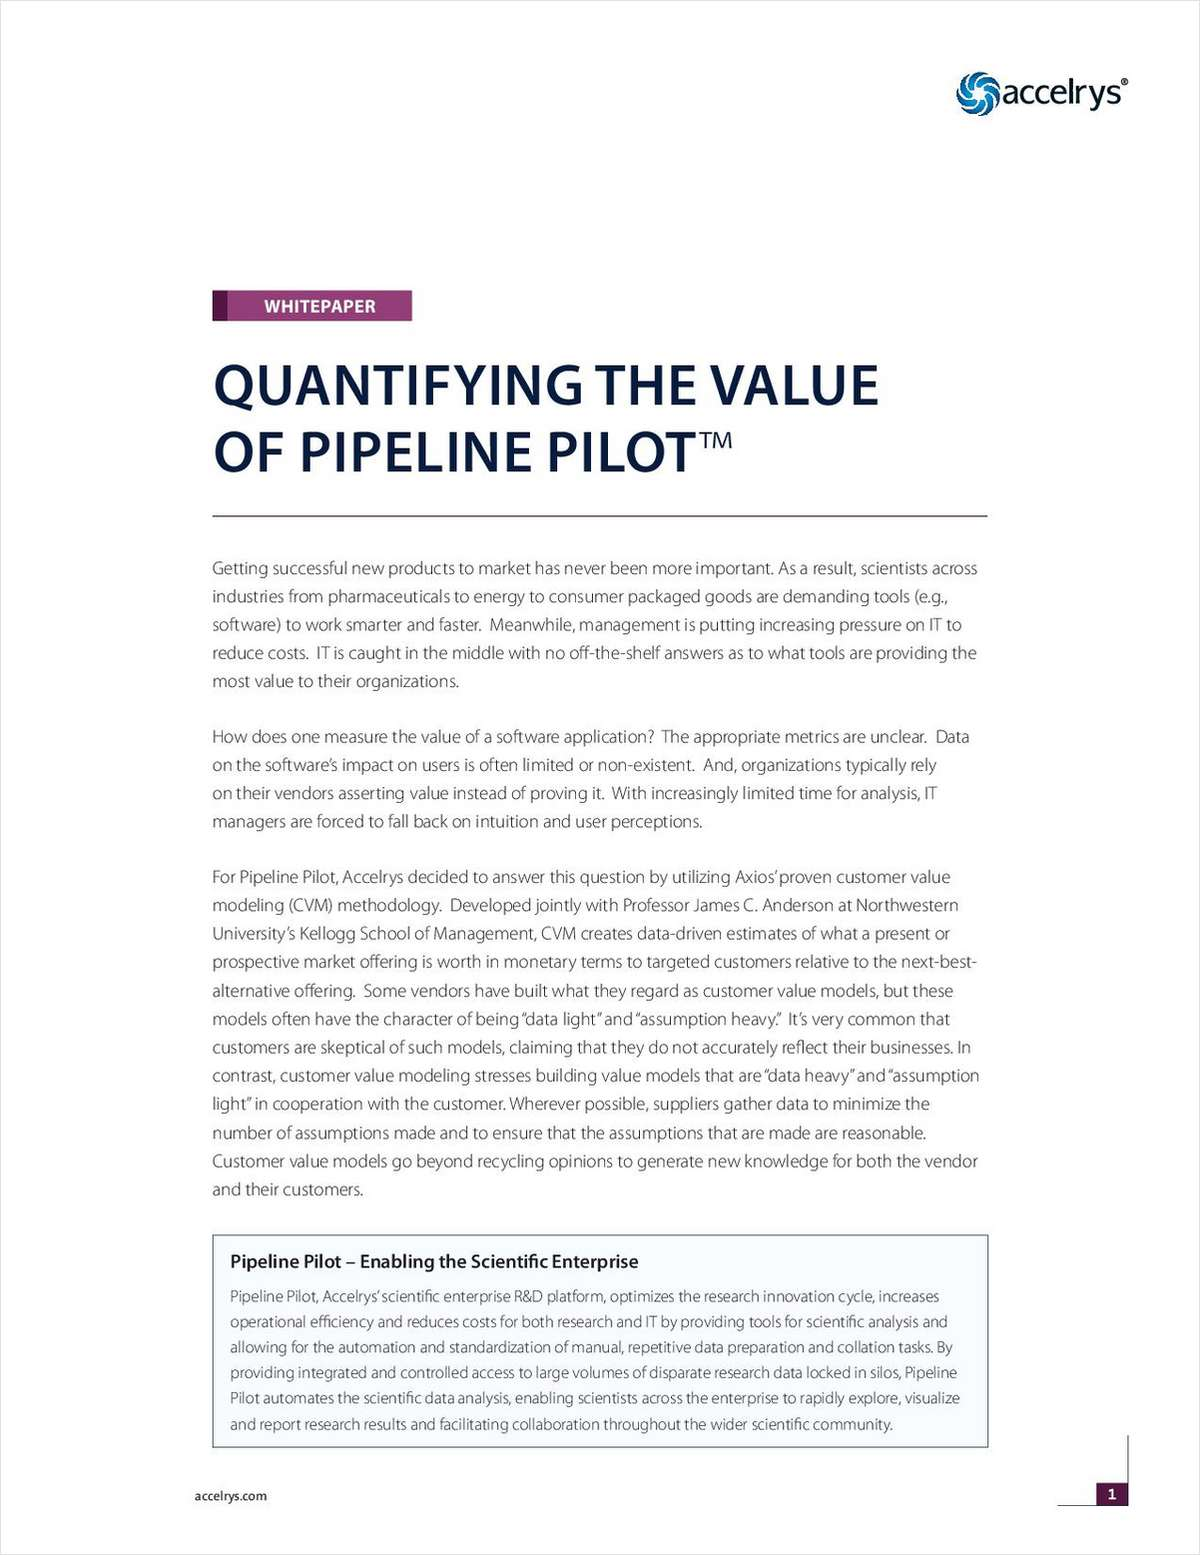 Quantifying the Value of Pipeline Pilot, the Accelrys Scientific Enterprise Platform